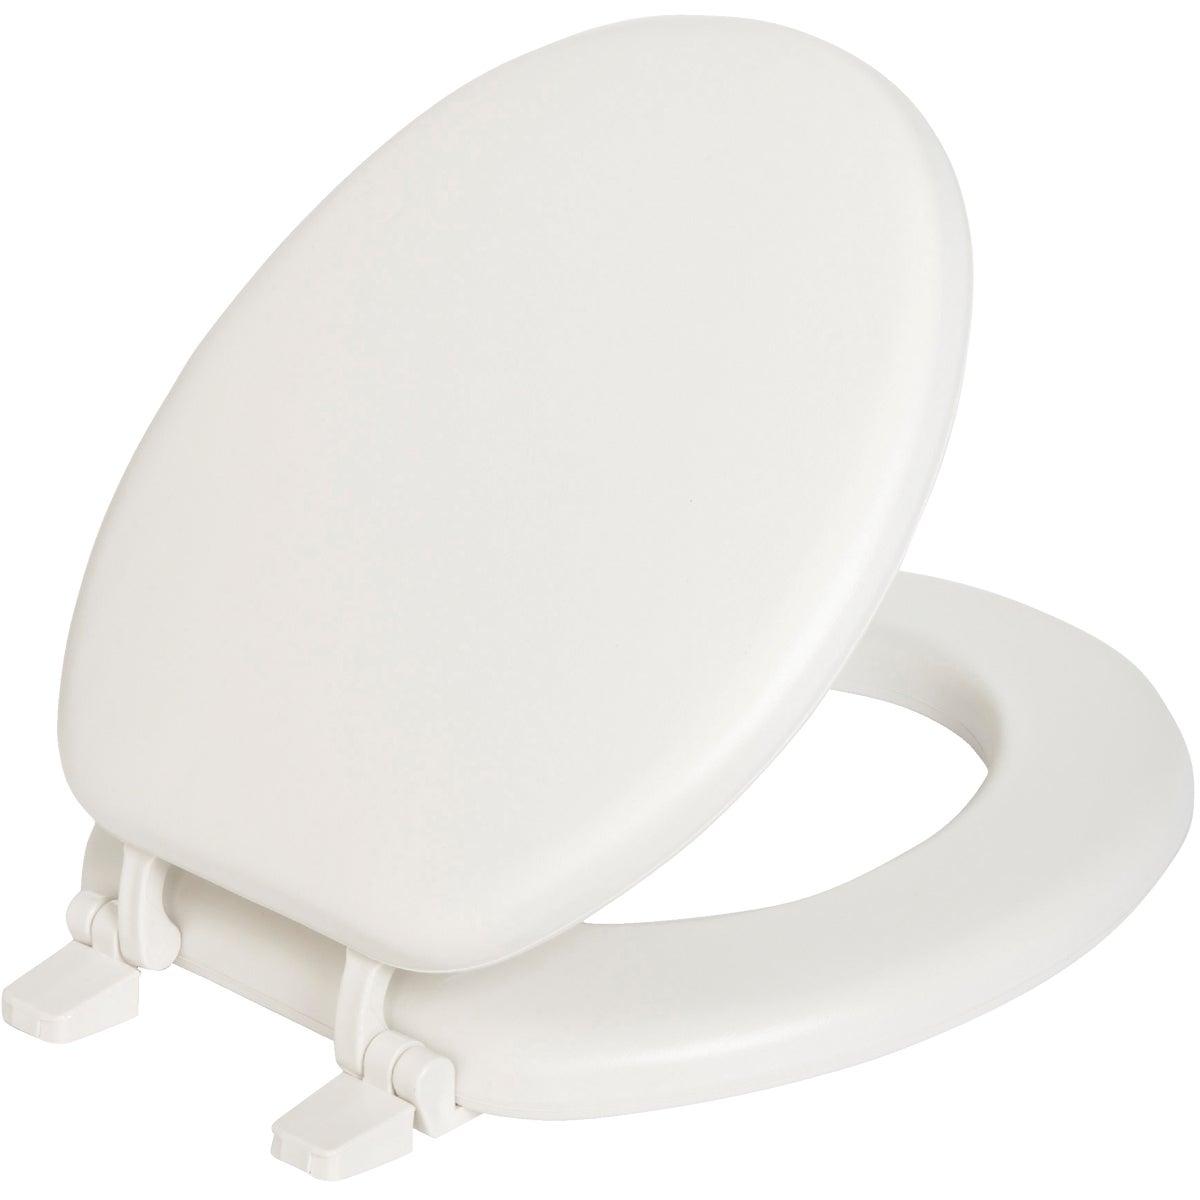 WHITE SOFT ECONOMY SEAT - 11-000 by Bemis Mfg